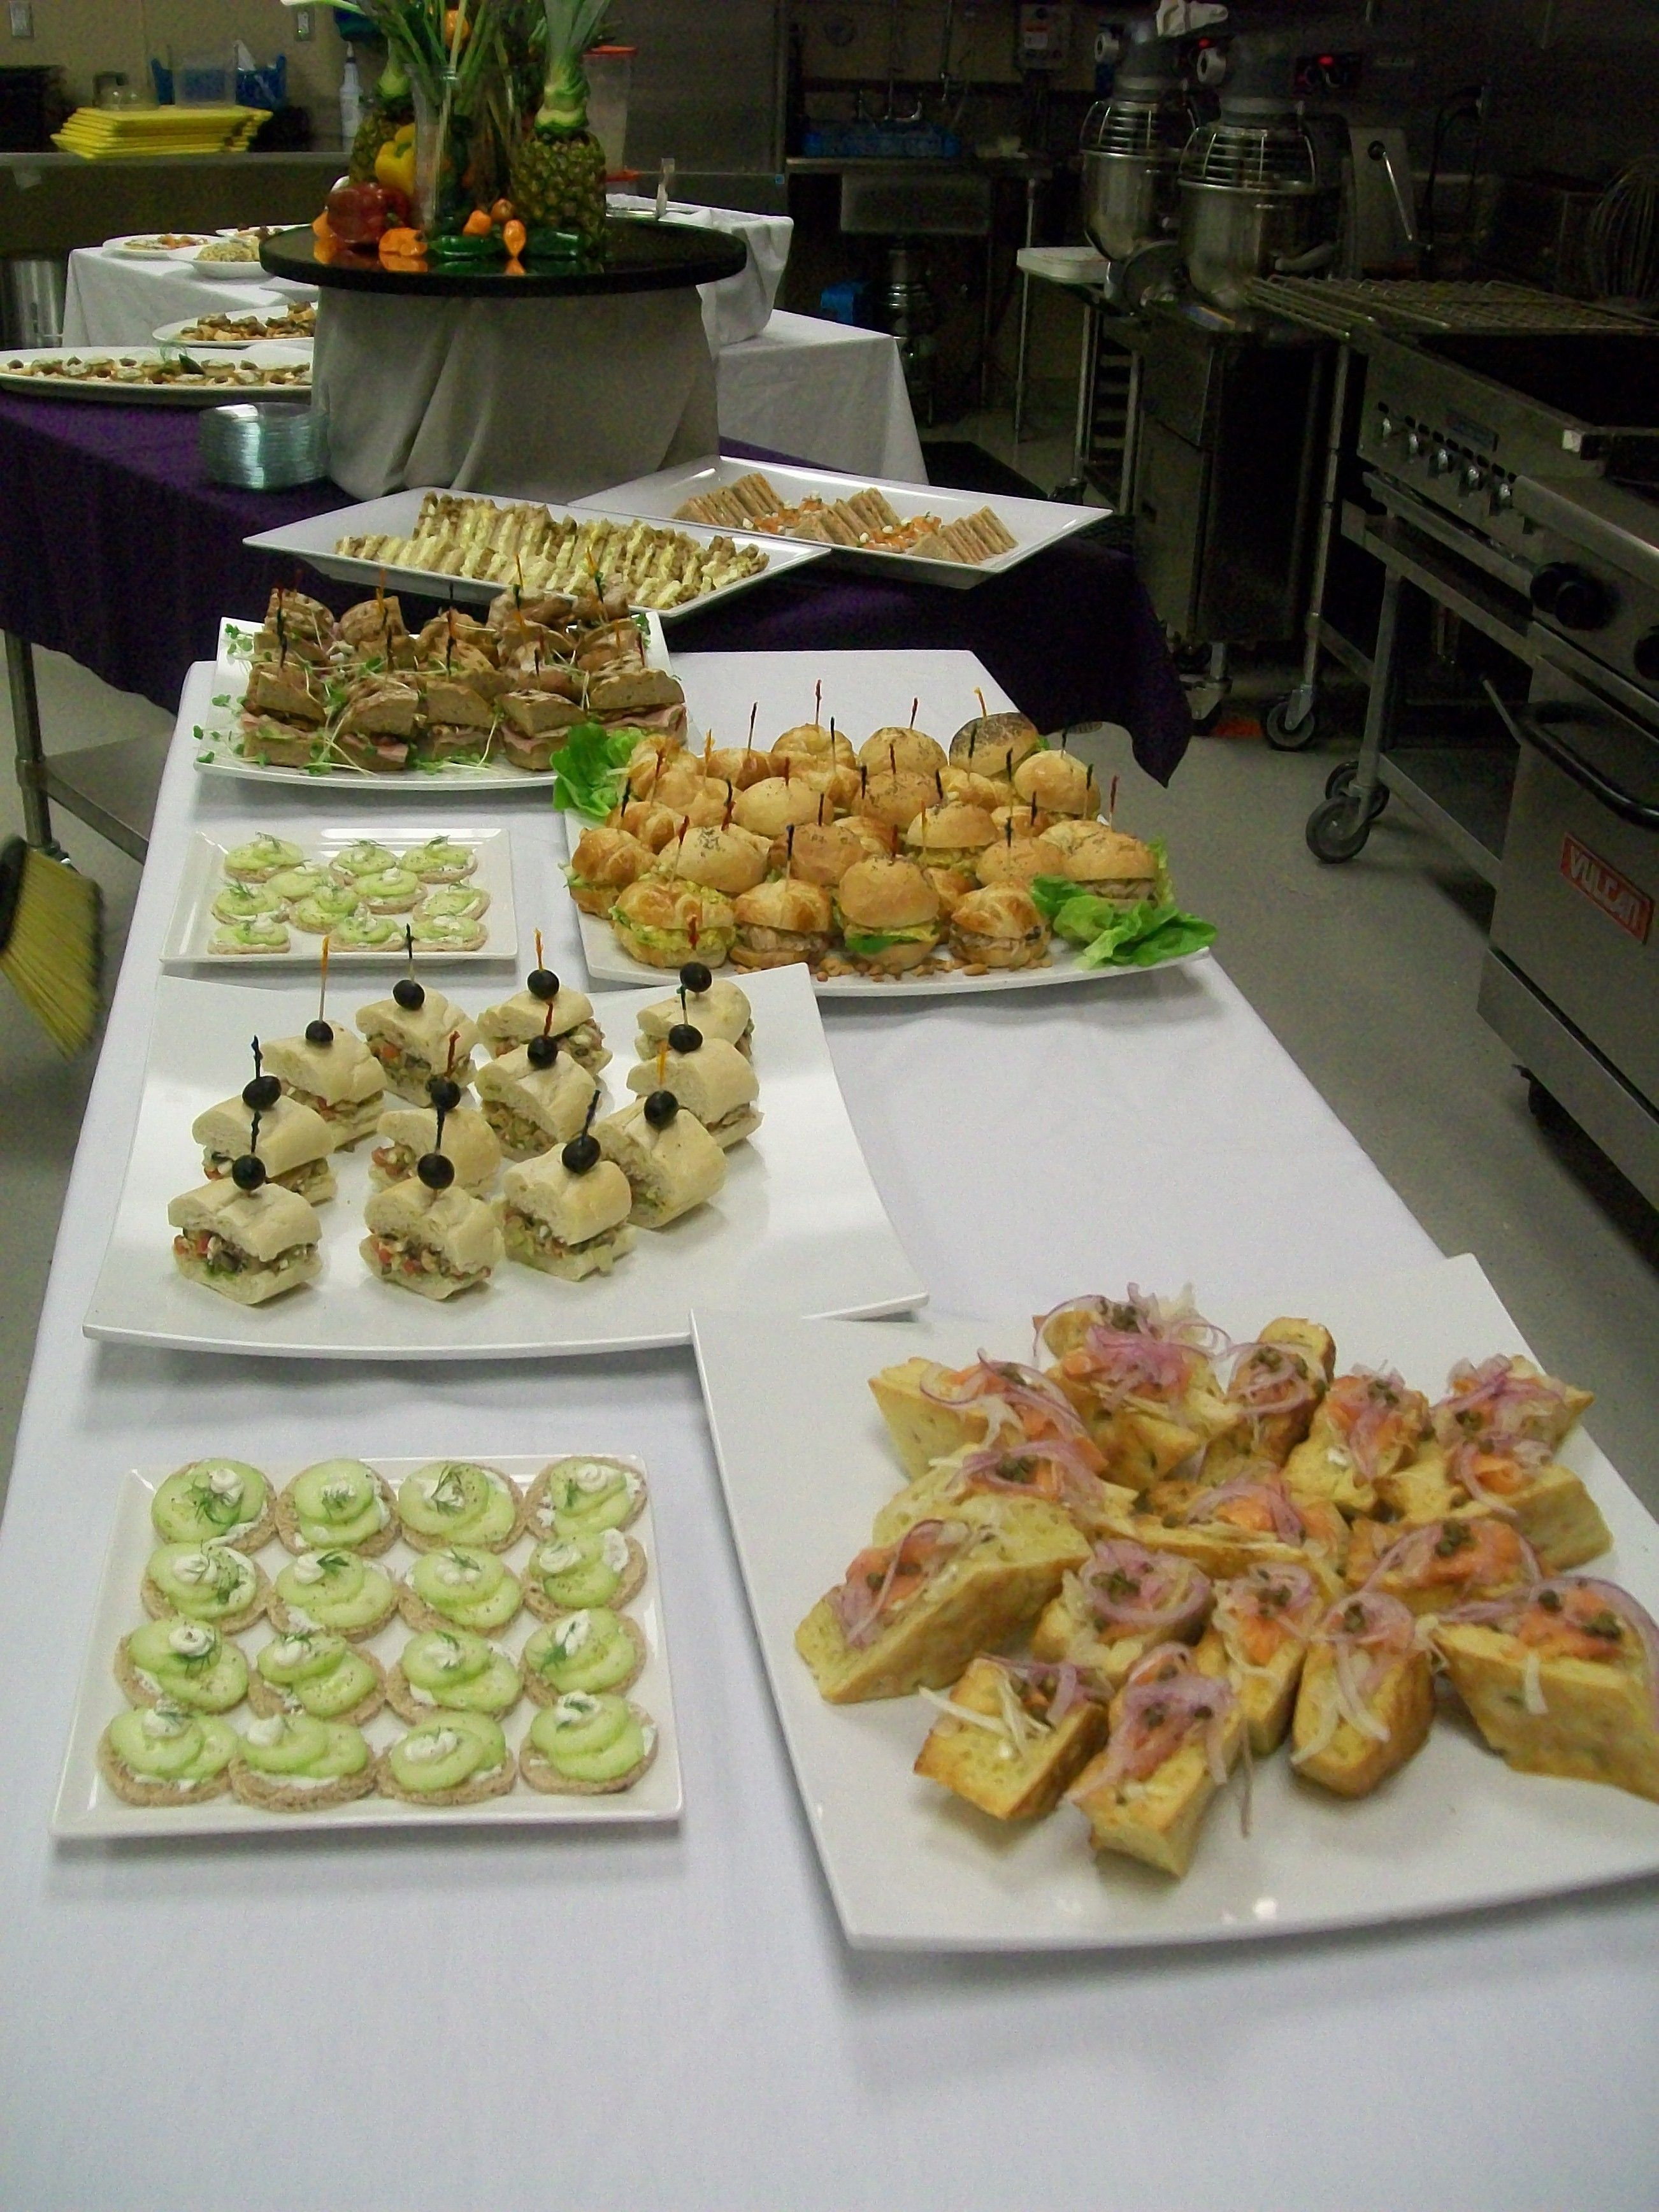 Soup Salad And Sandwich Buffet With Images Sandwich Buffet Yummy Food Culinary Arts